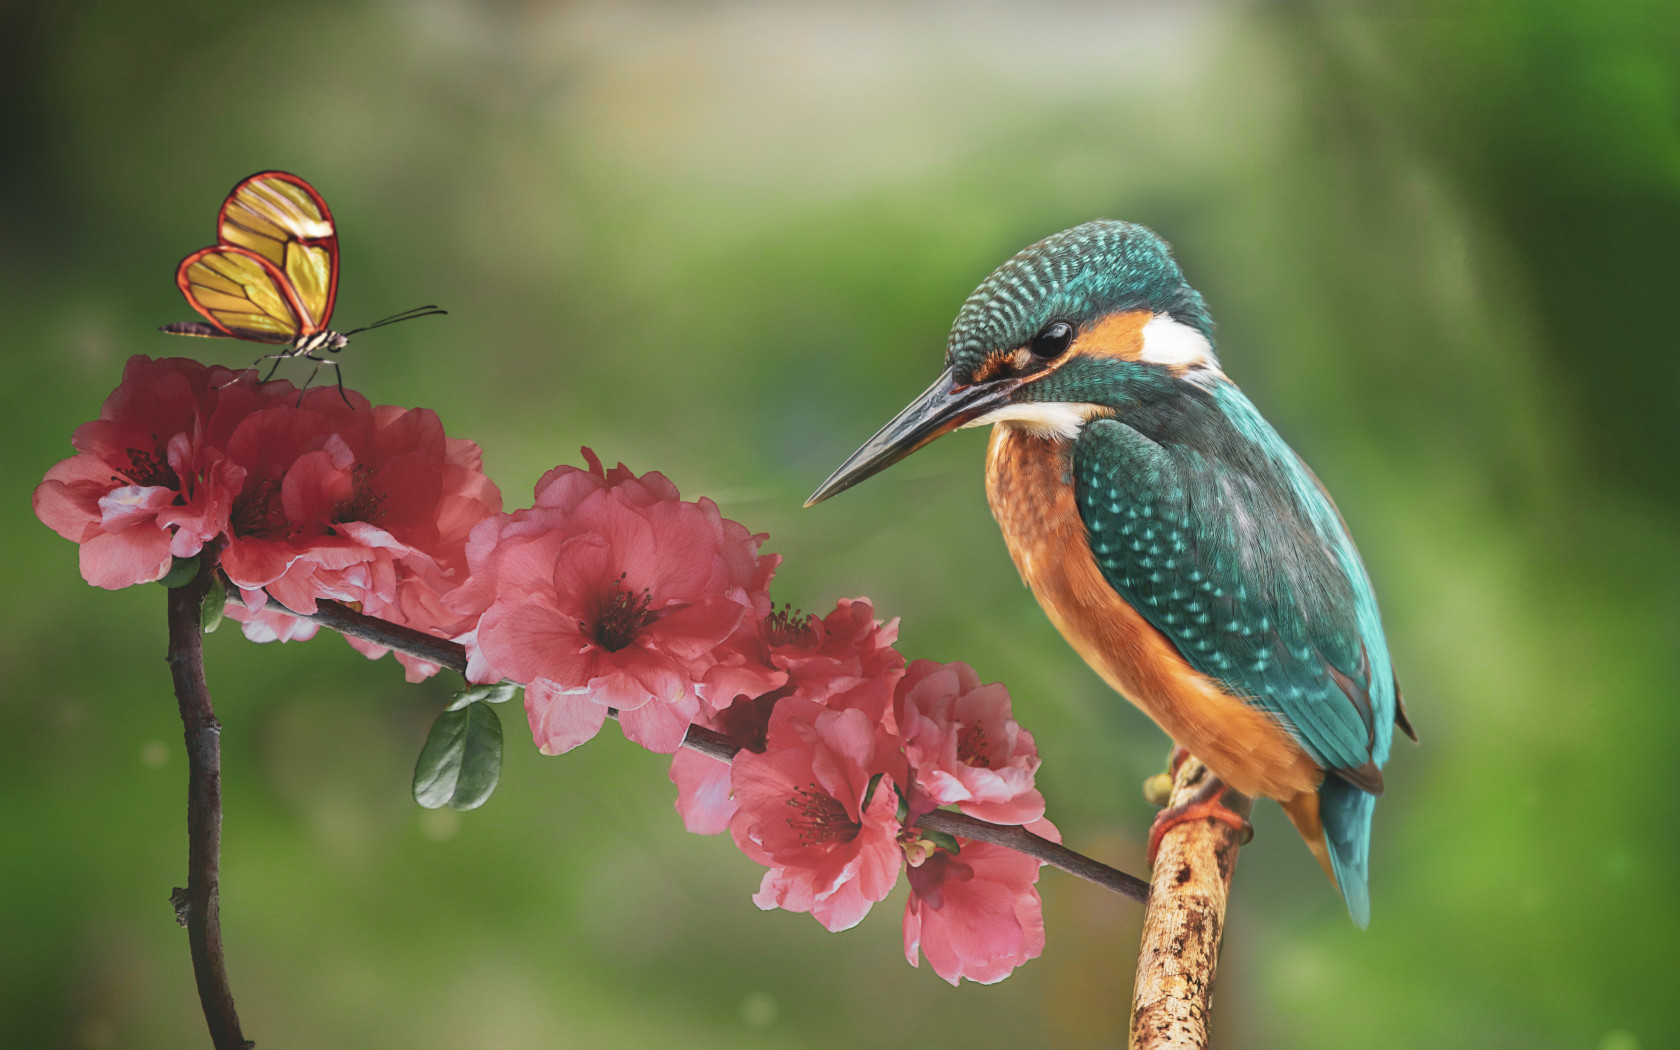 Kingfisher and the butterfly wallpaper 1680x1050